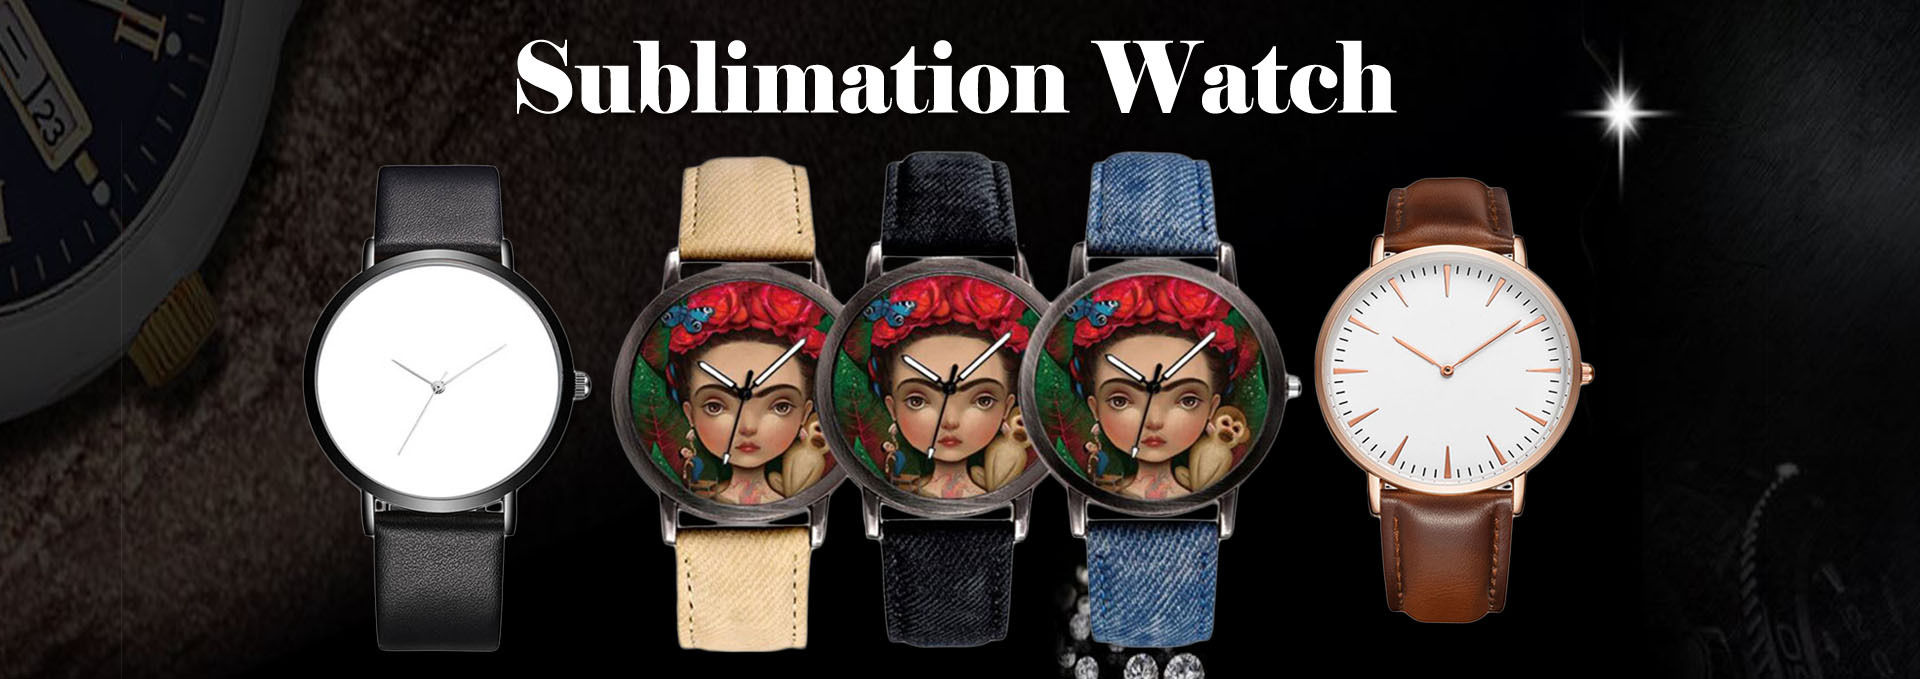 Sublimation Watch